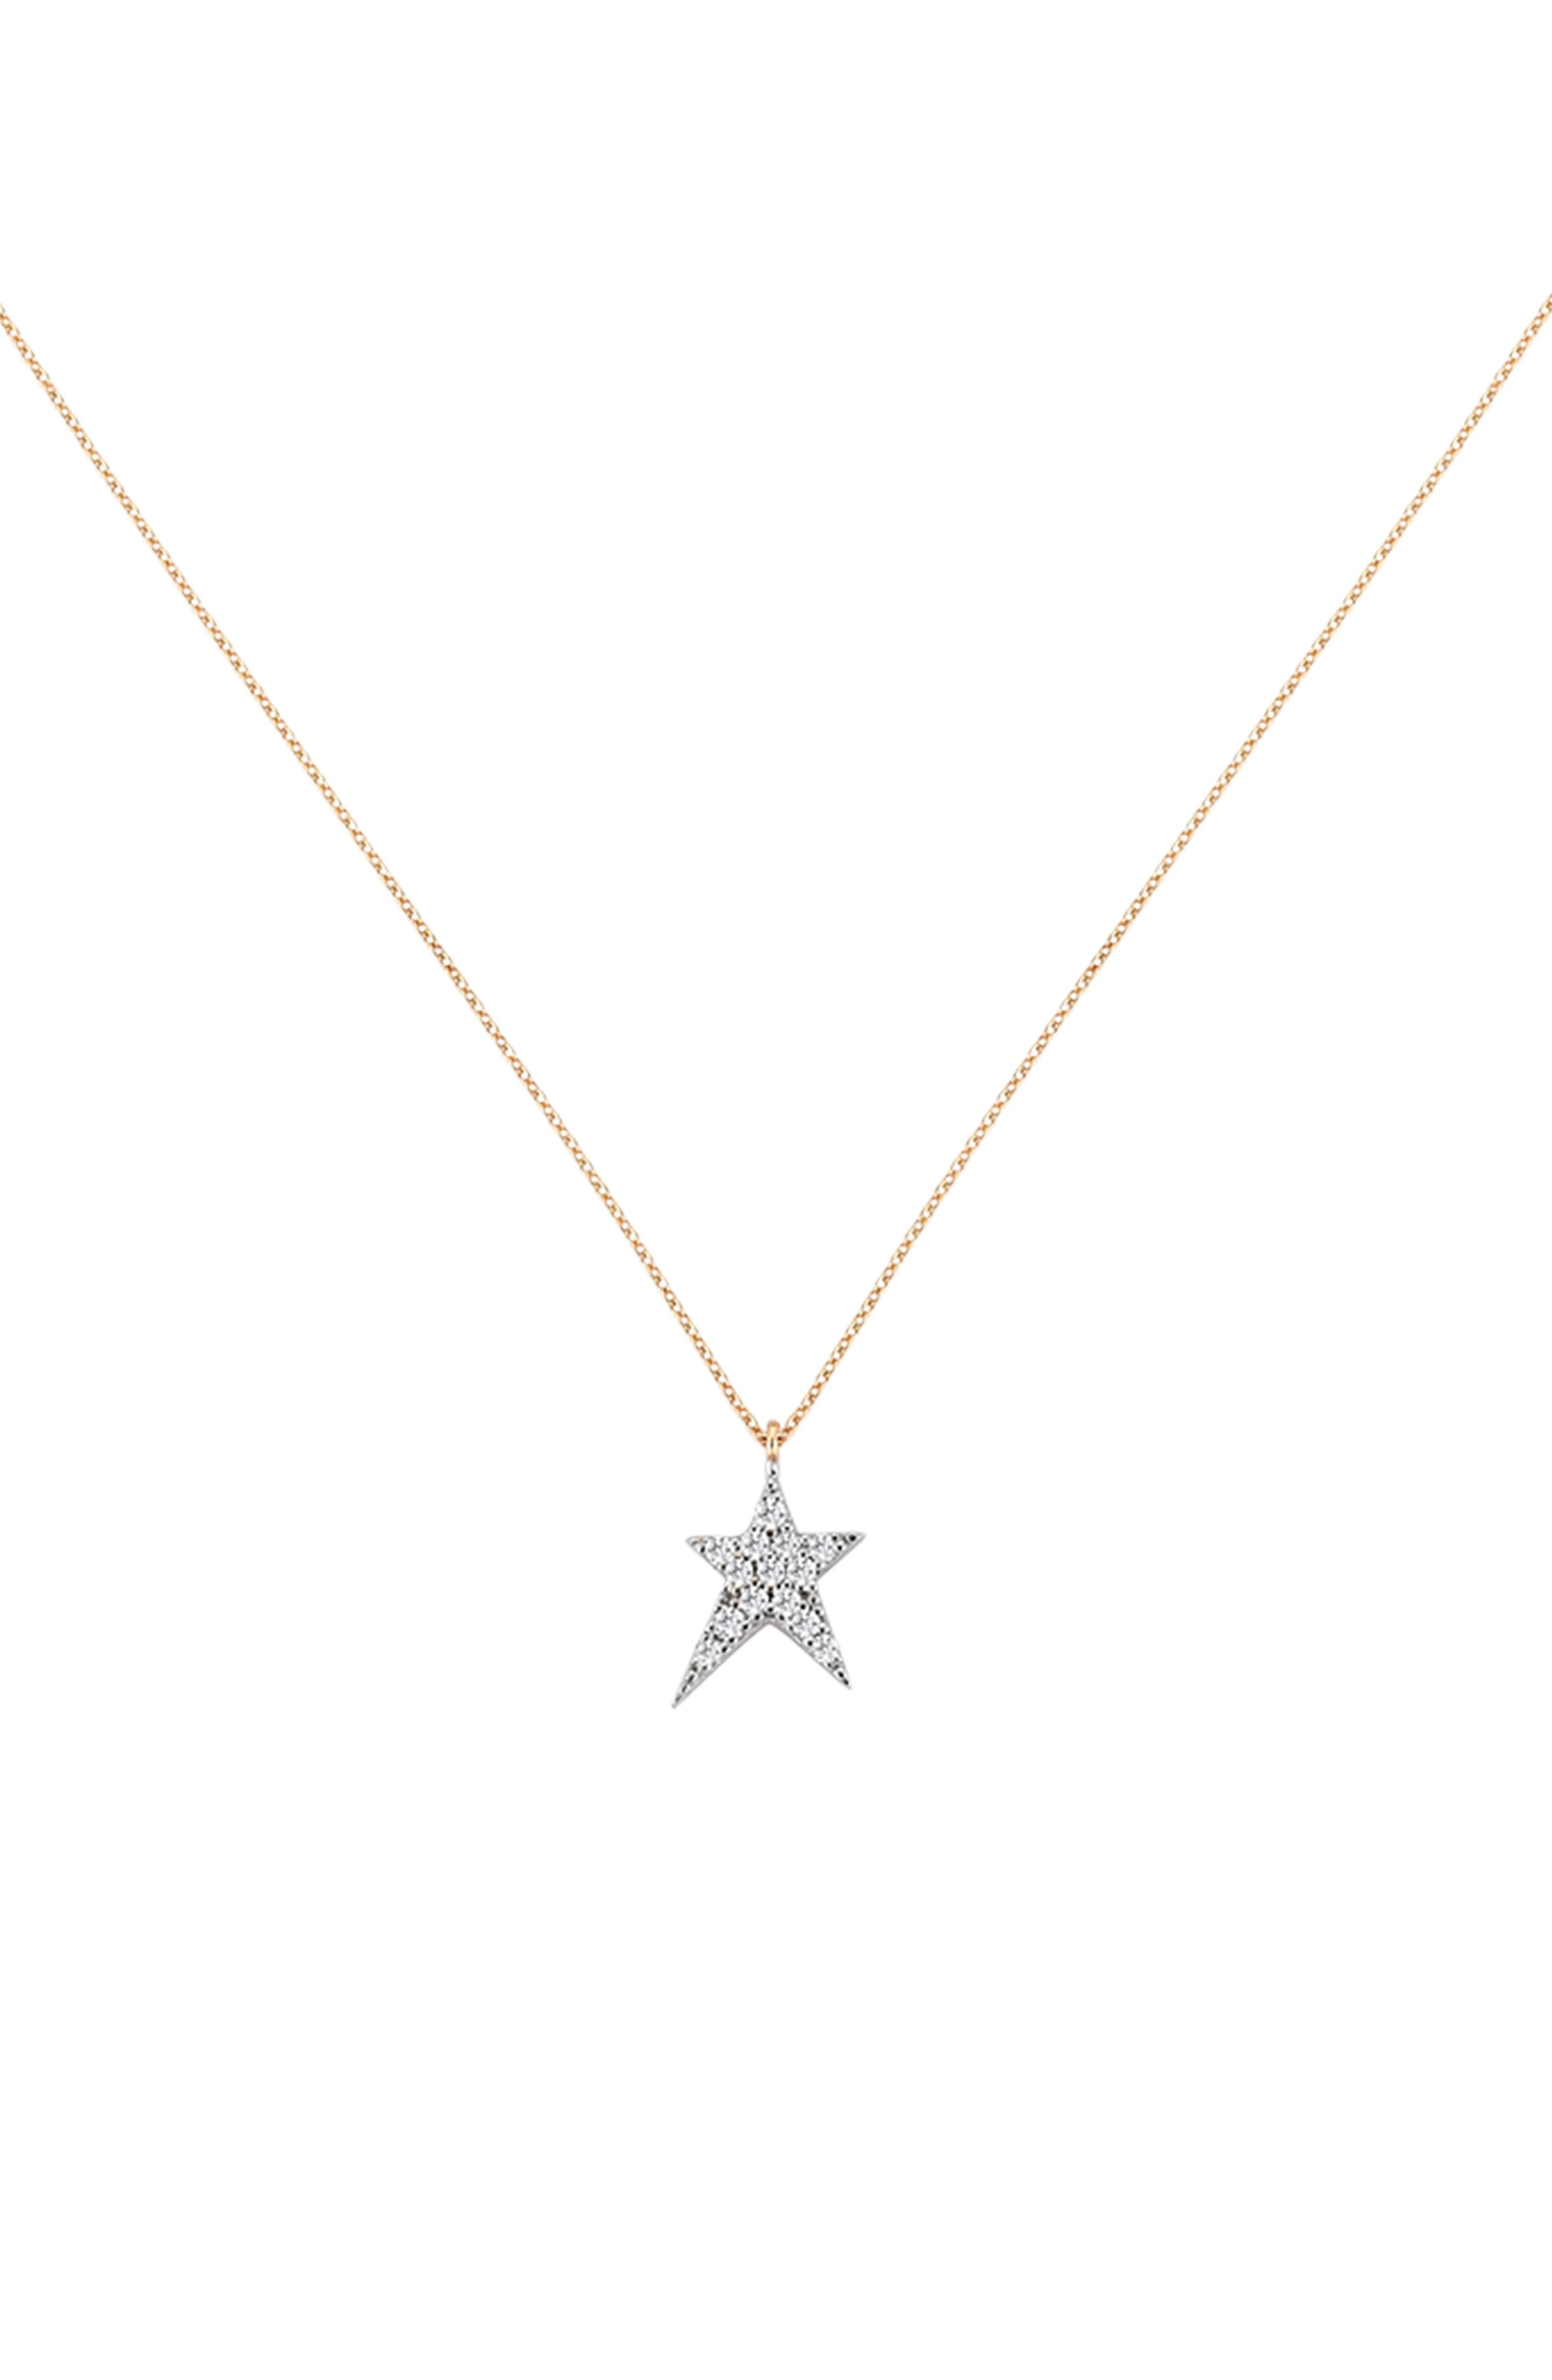 Struck Star Diamond Necklace,                         Main,                         color, ROSE GOLD